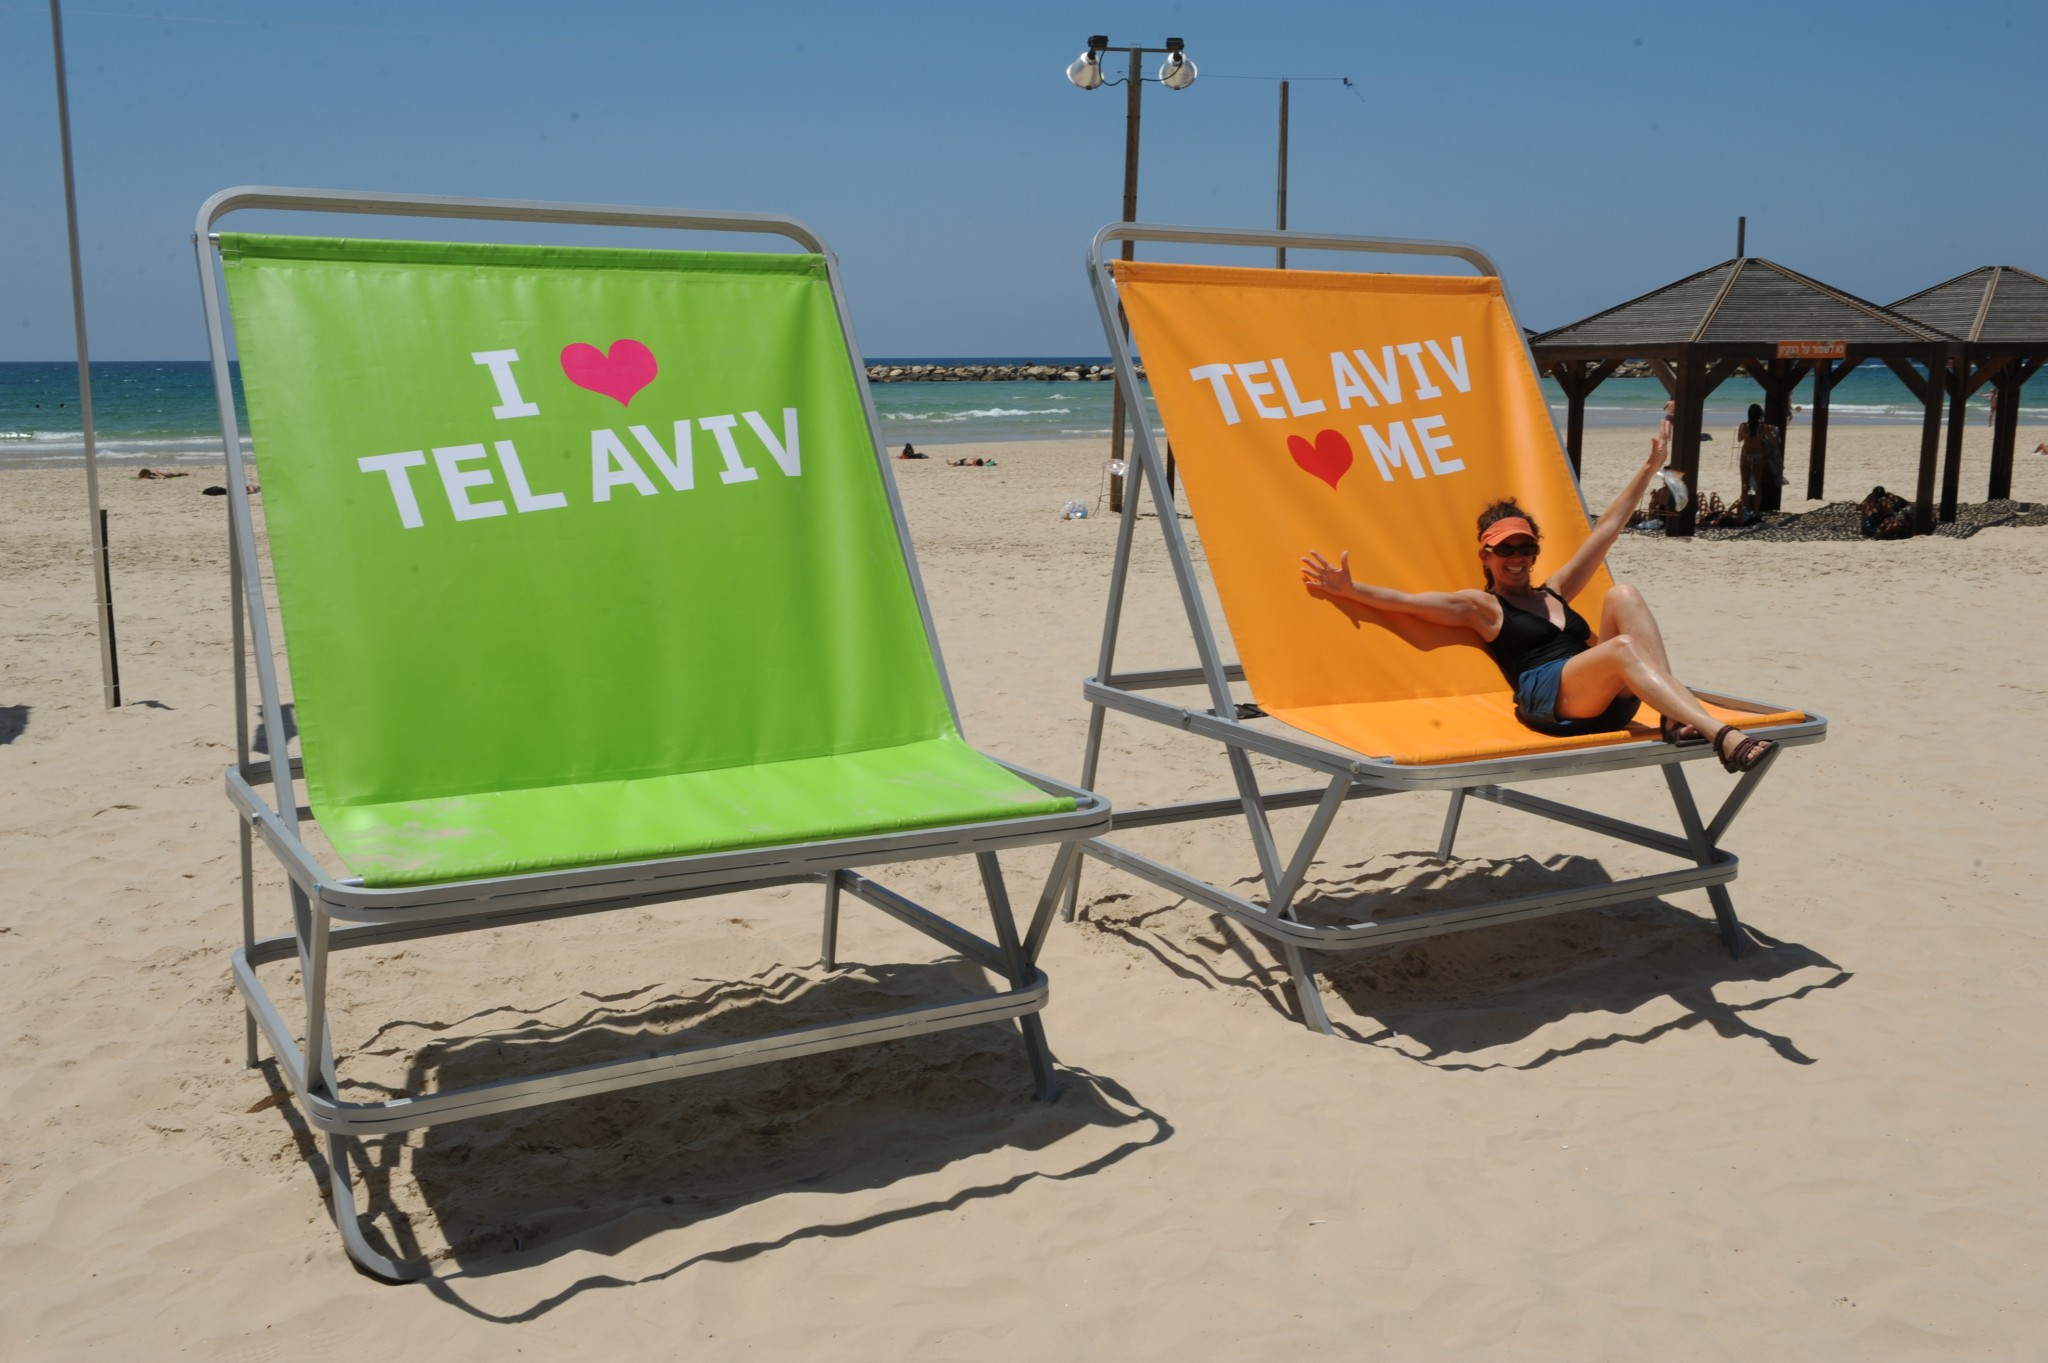 There are two giant chairs at Gordon Beach just waiting for beach-goers to sit for selfies. Photo by Kfir Sivan